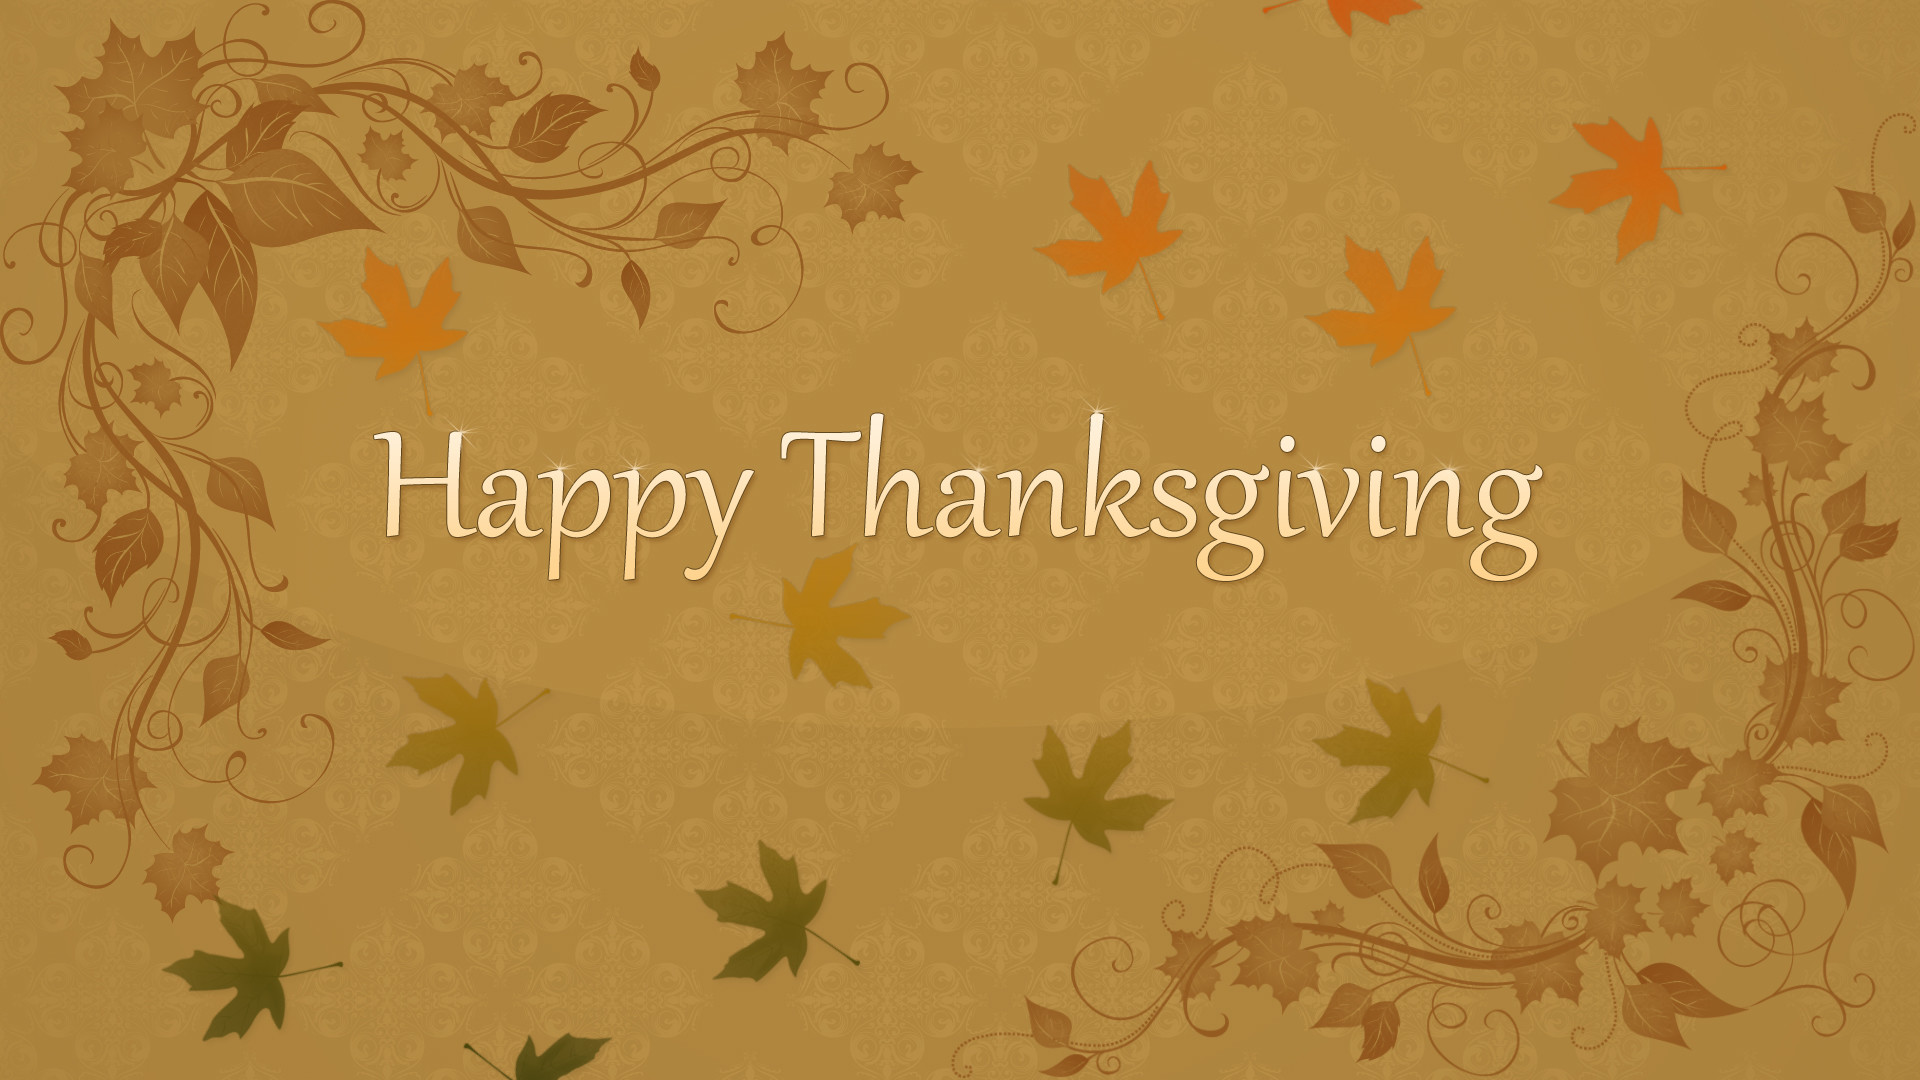 1920x1080 Download Thanksgiving HD Wallpaper · Thanksgiving BackgroundThanksgiving  WallpaperHoliday ...